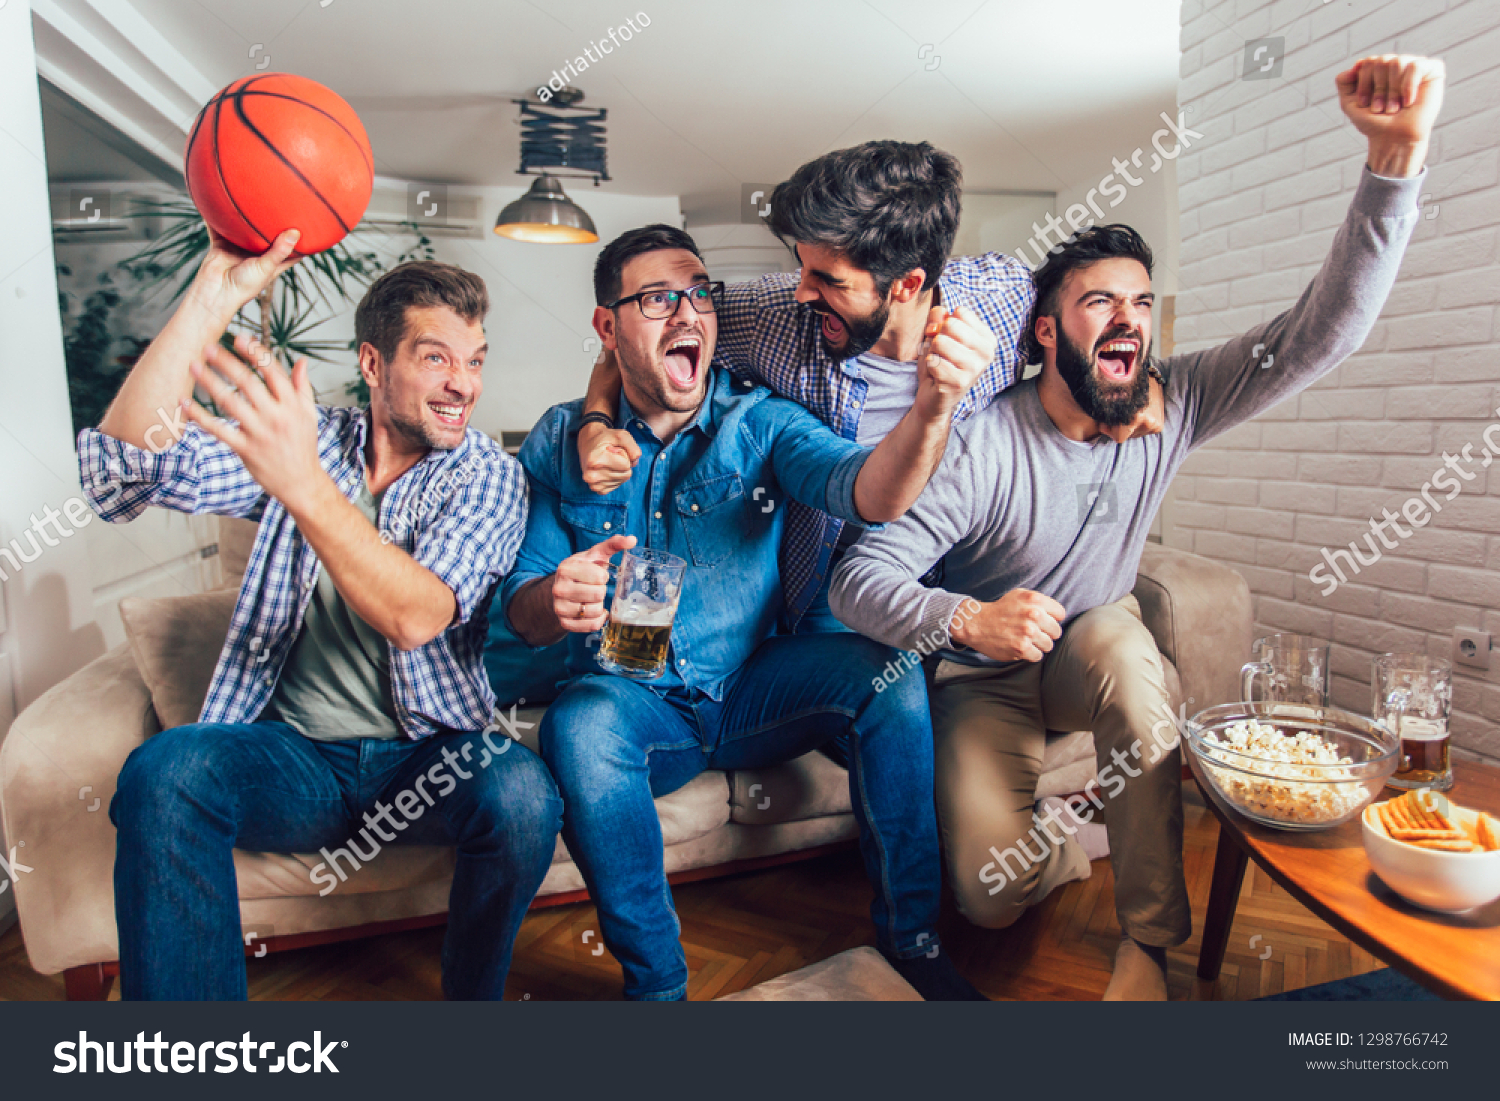 Happy Friends Basketball Fans Watching Basketball Stock Photo Edit Now 1298766742